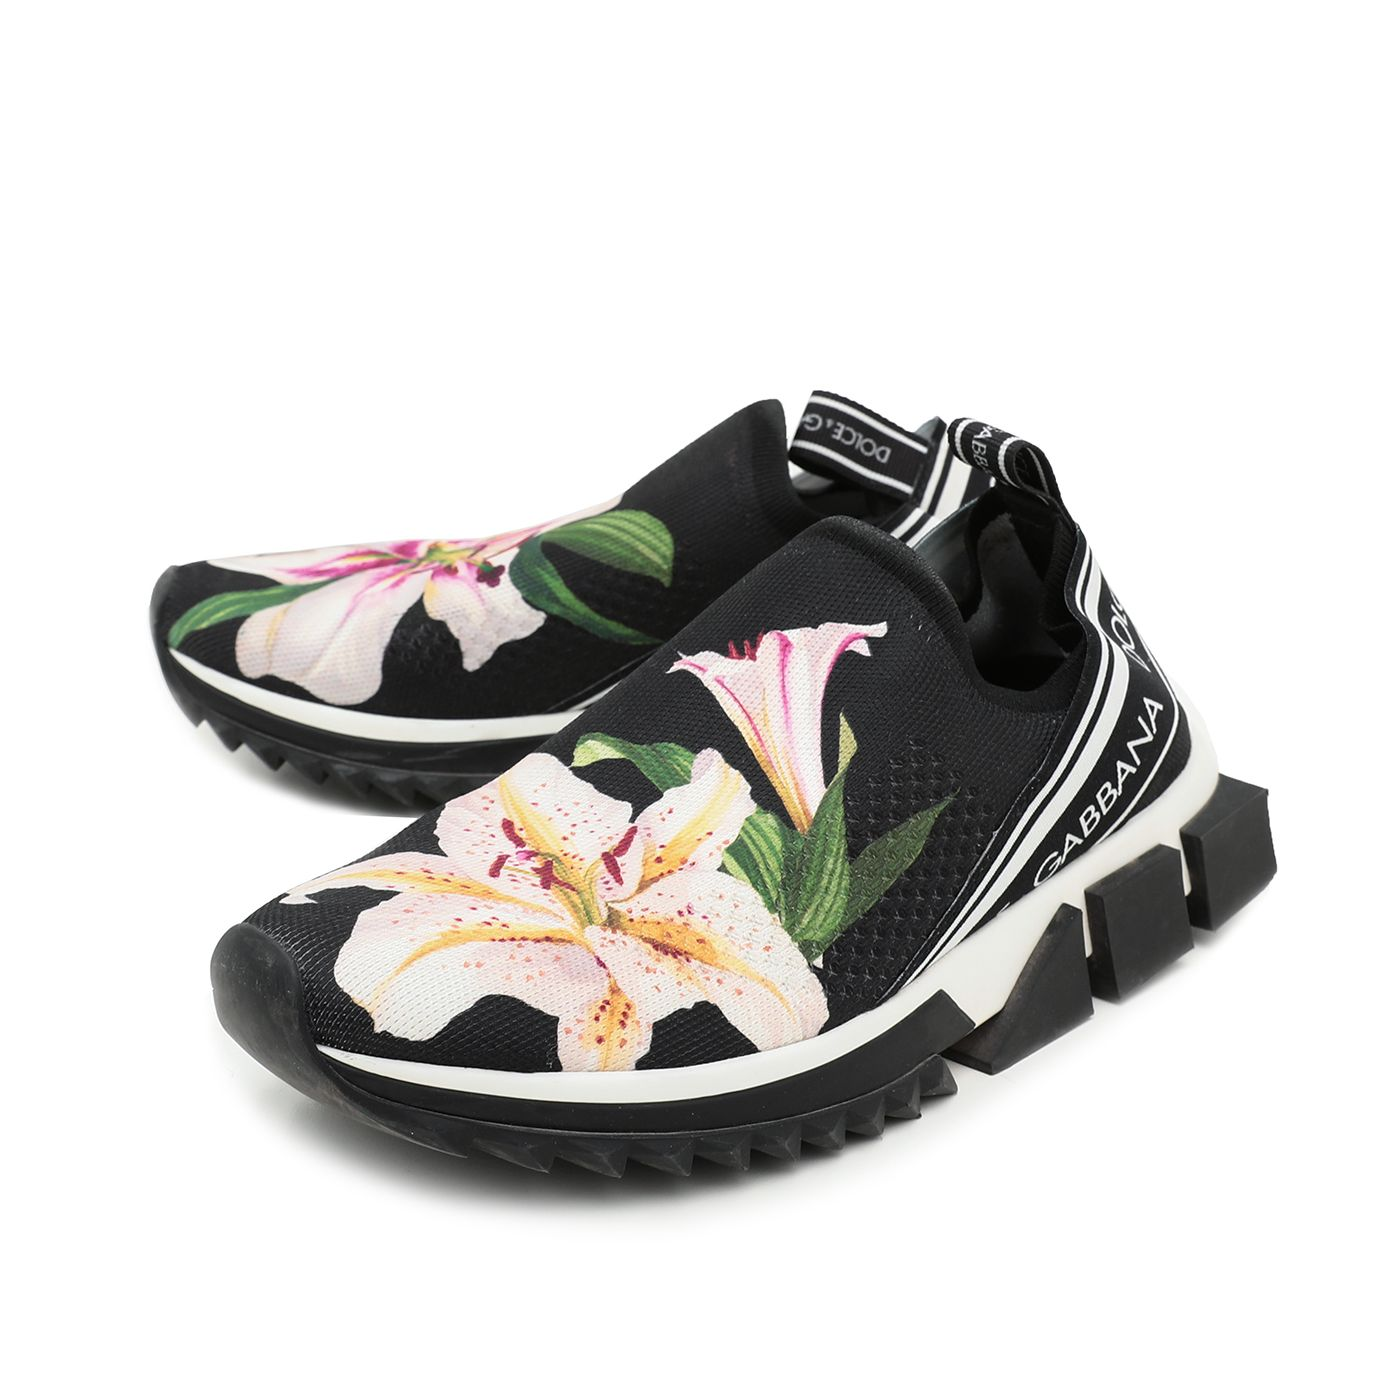 Dolce & Gabbana Bicolor Floral Print Stretch Mesh Sorrento Sneakers 39.5